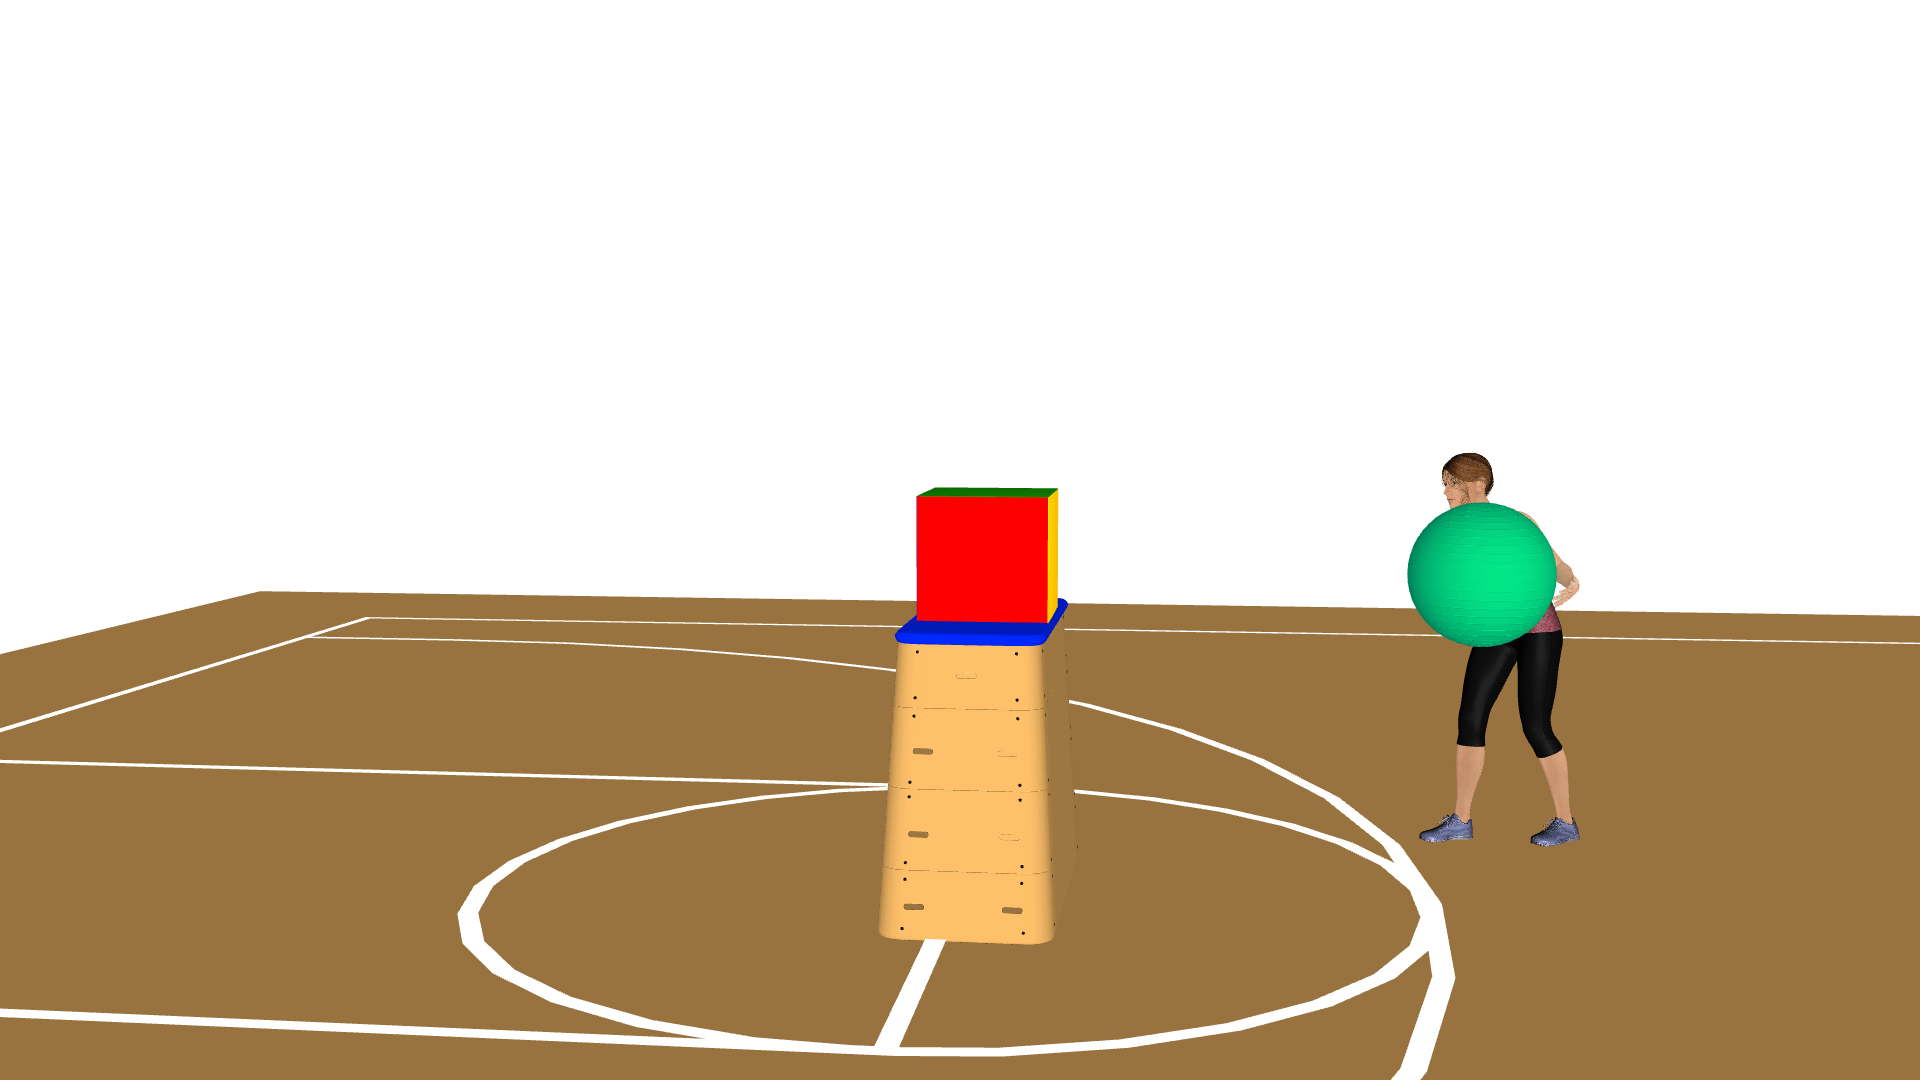 Poull Ball Id Sports